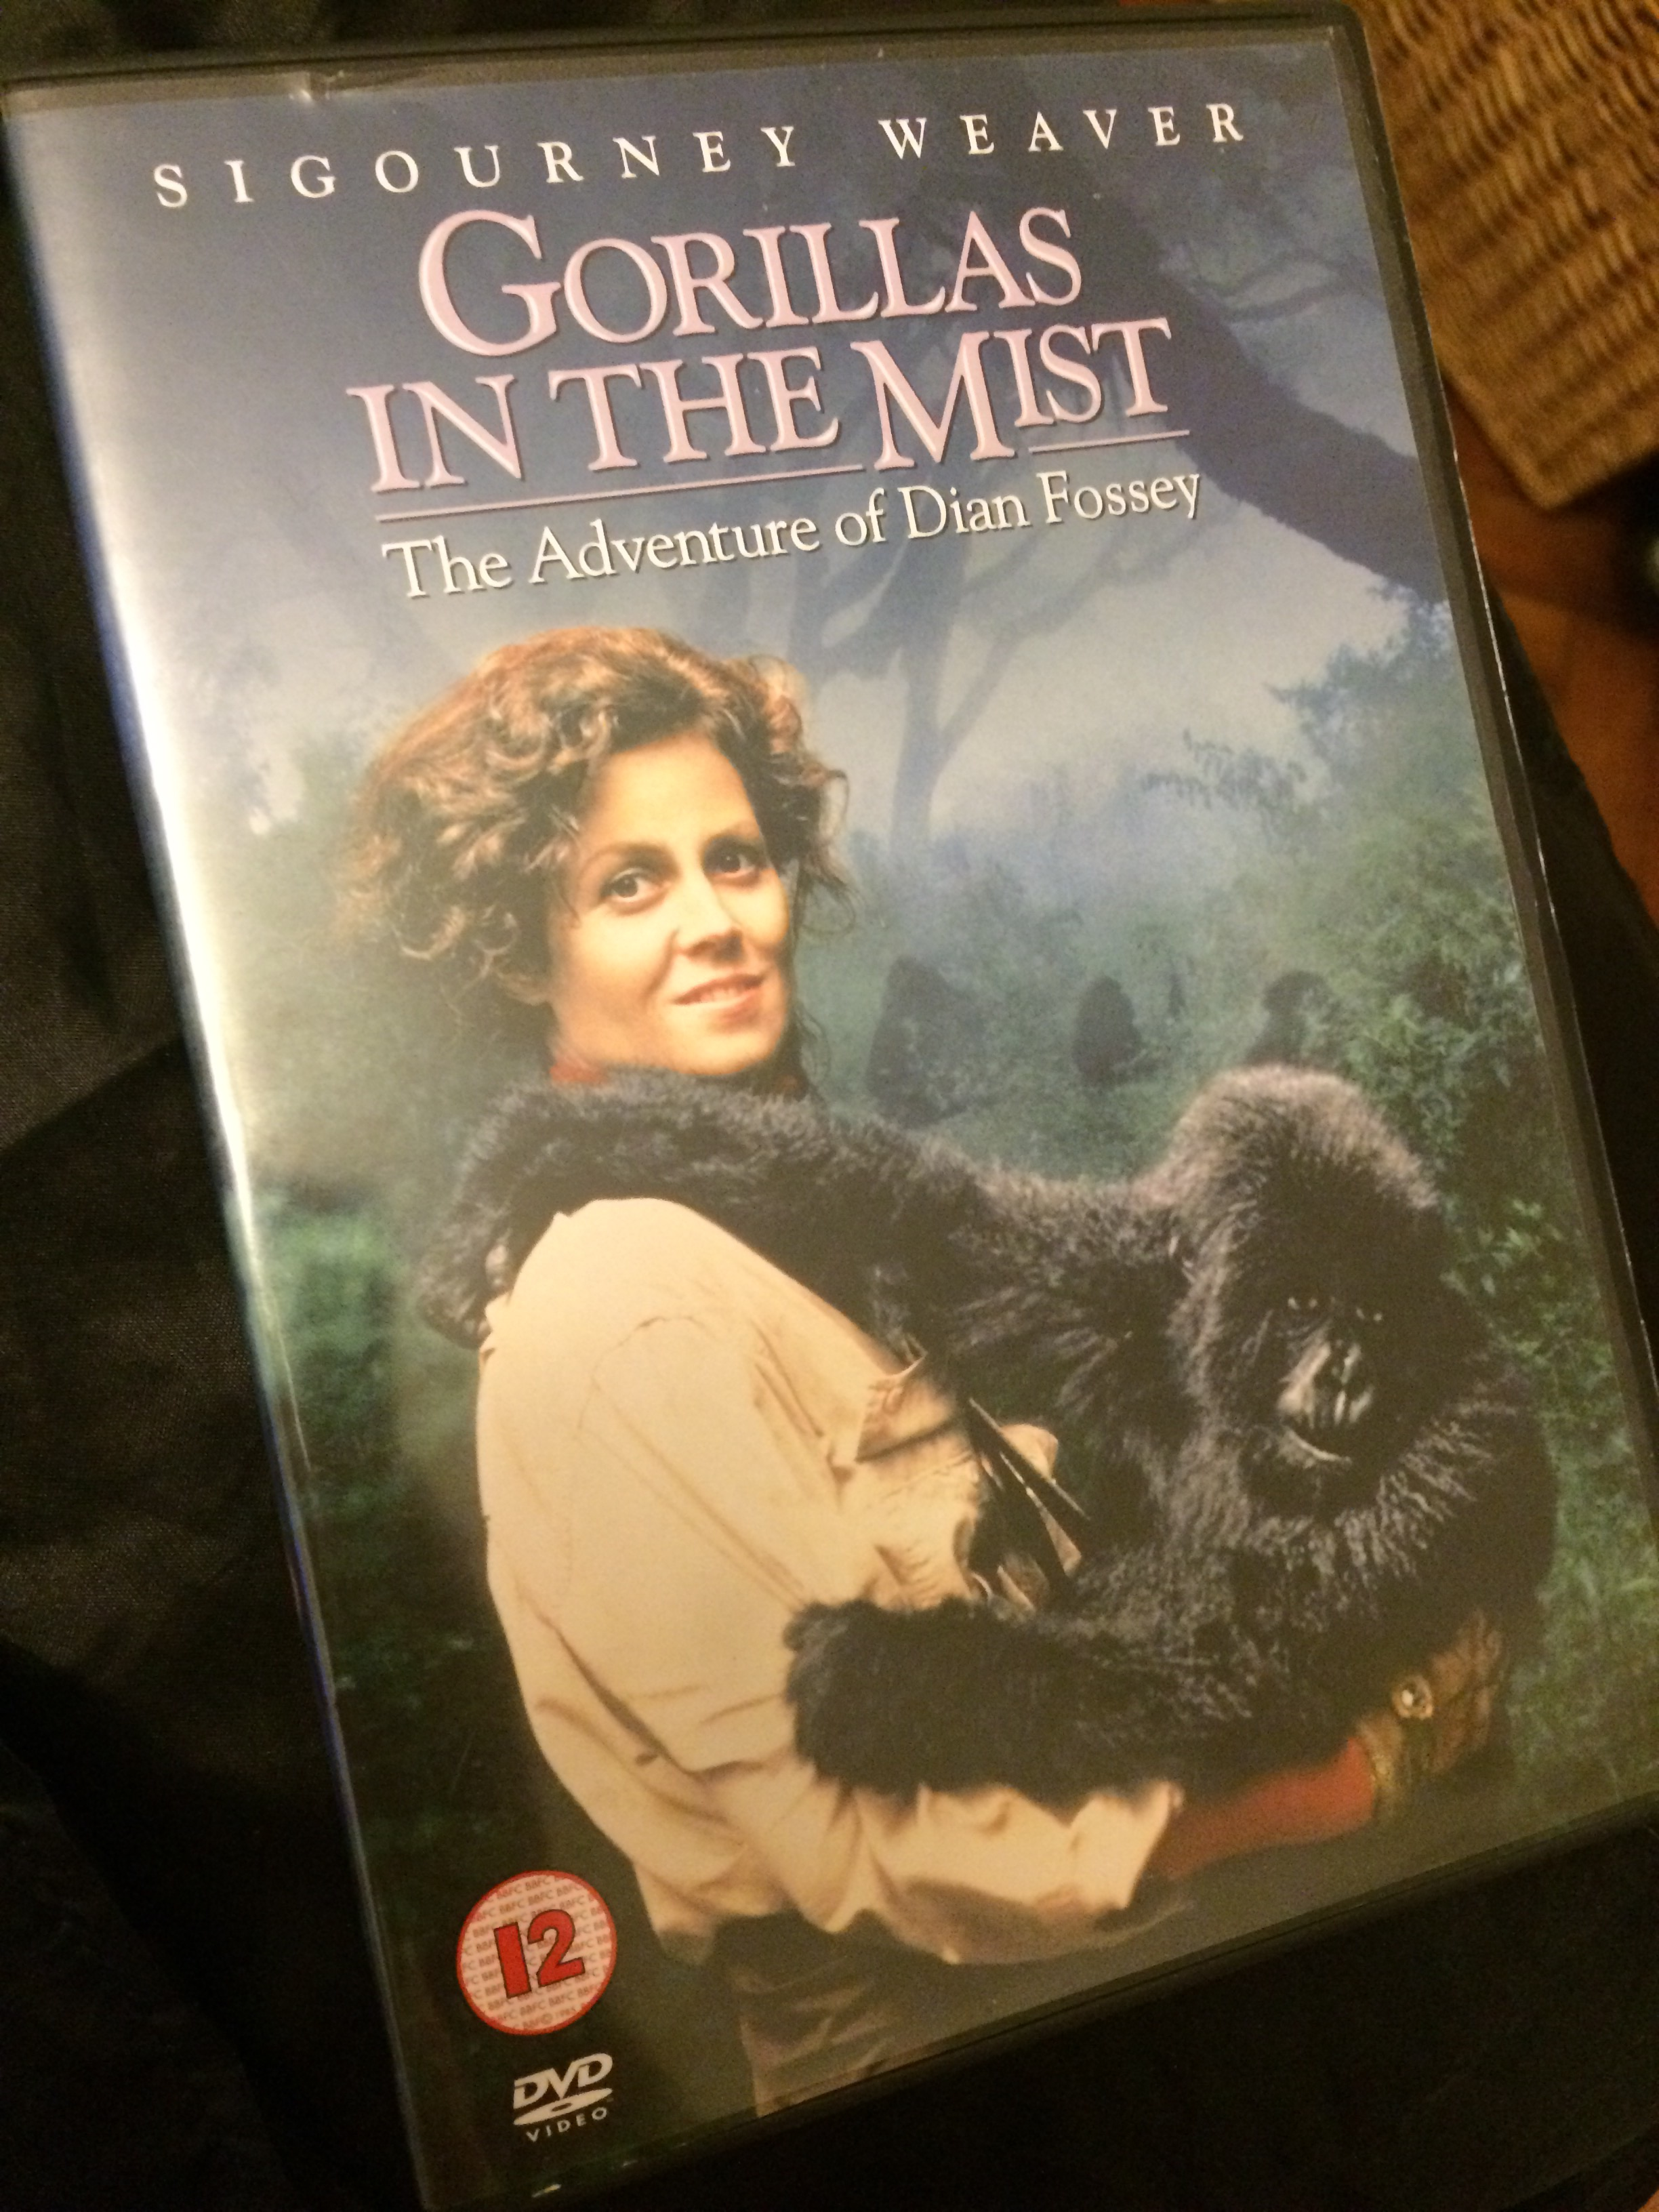 gorillas in the mist in critic essay Immediately download the gorillas in the mist summary, chapter-by-chapter analysis, book notes, essays, quotes, character descriptions, lesson plans, and more - everything you need for studying or teaching gorillas in the mist.